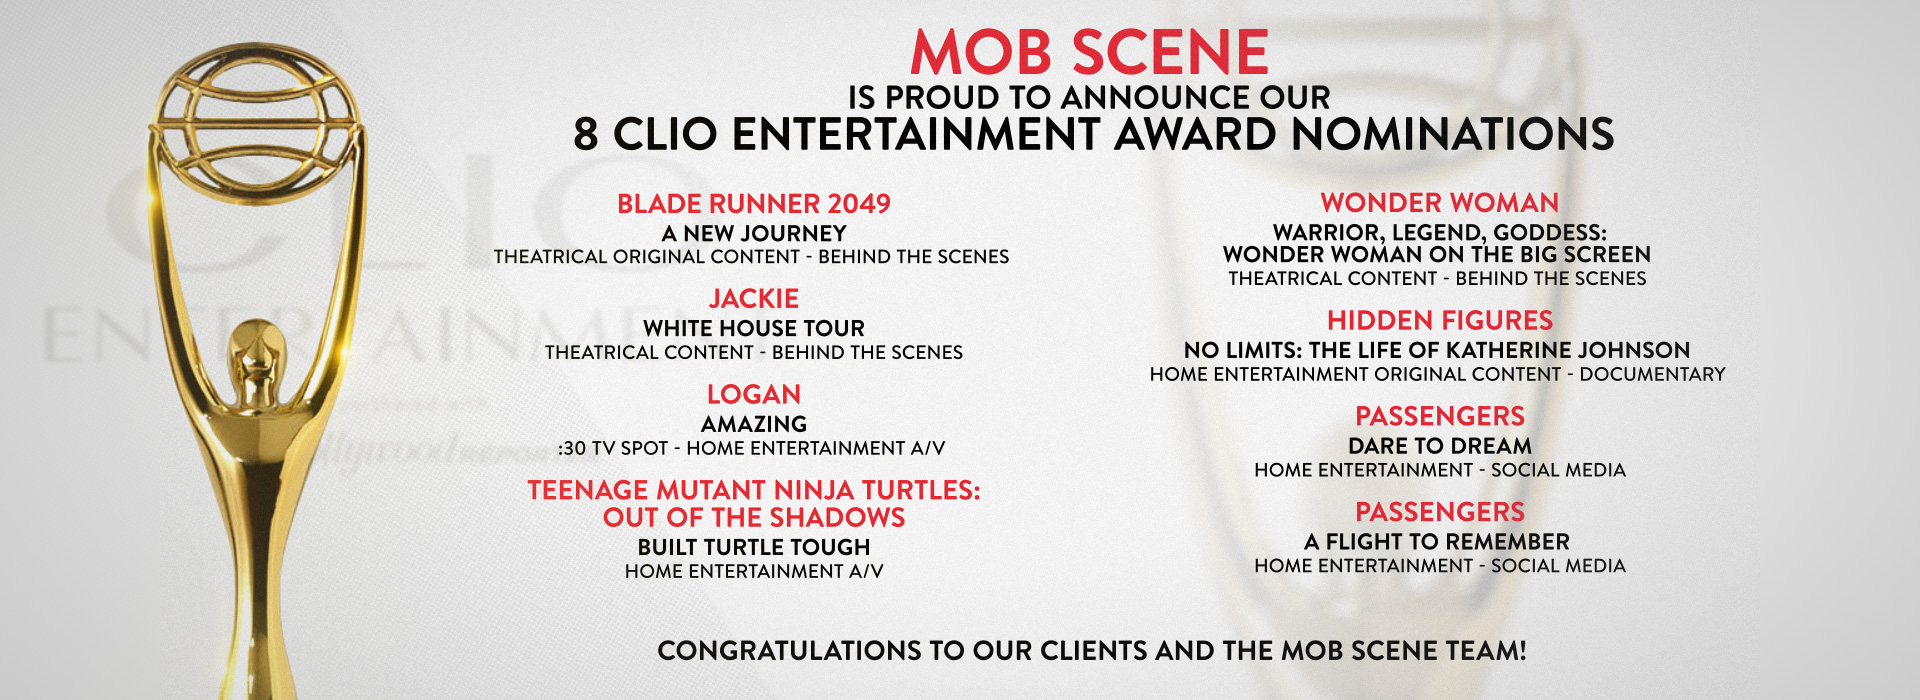 MS_ClioAwardNominations_Marquee_jl_01